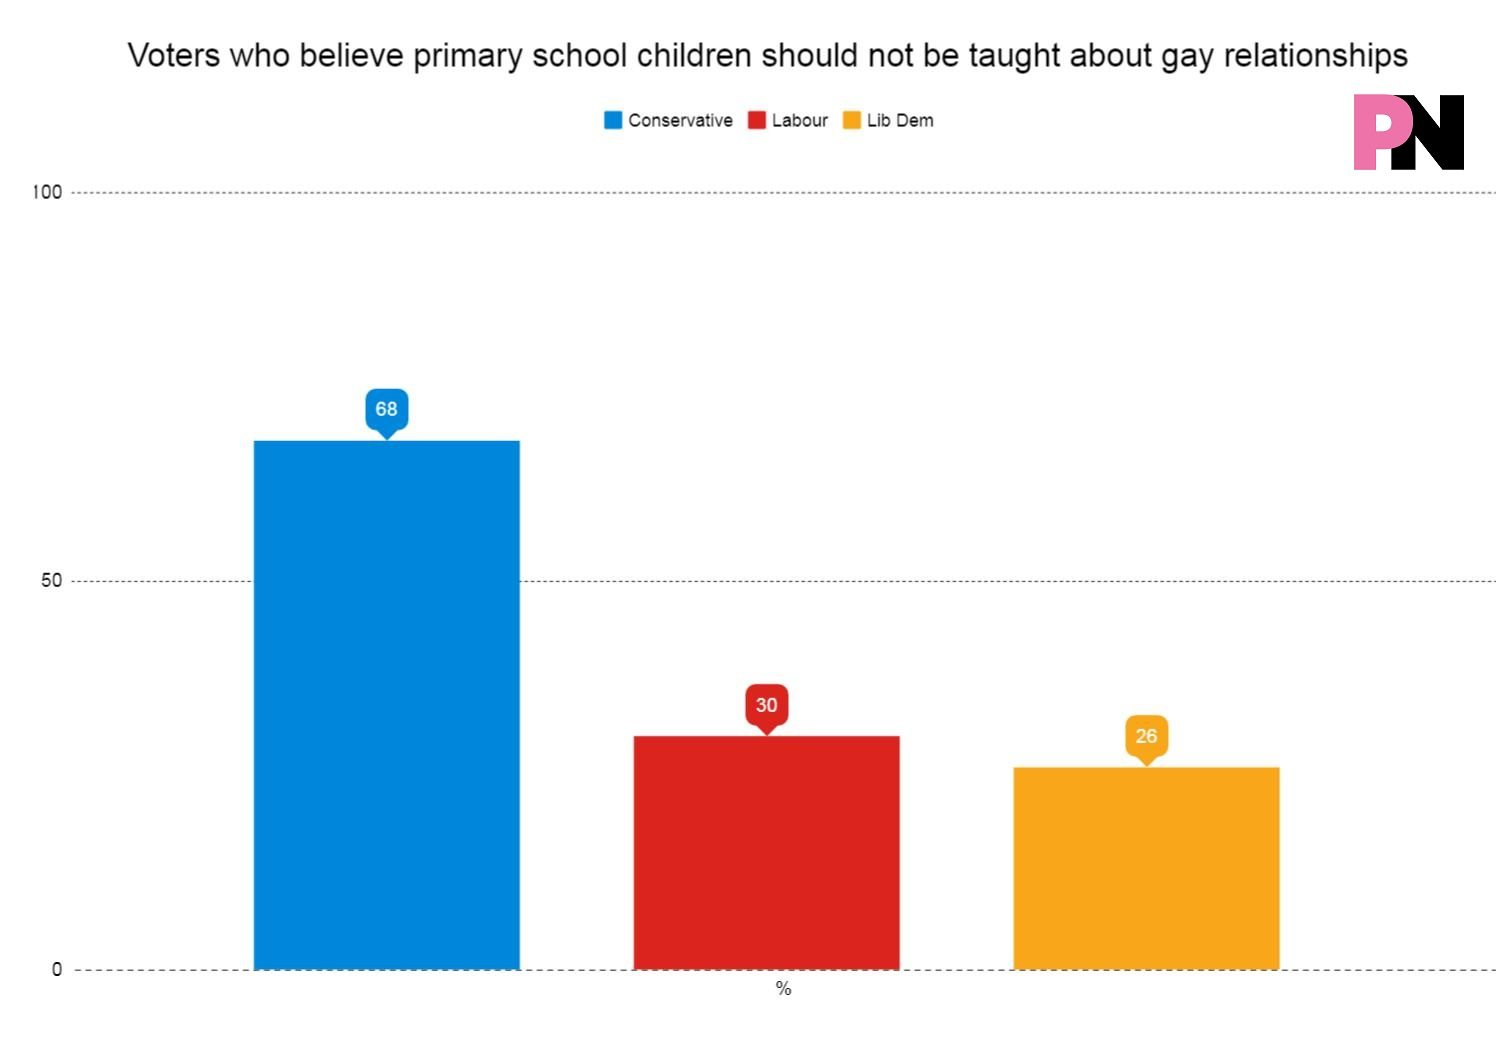 Graph showing voters who oppose gay-inclusive primary education